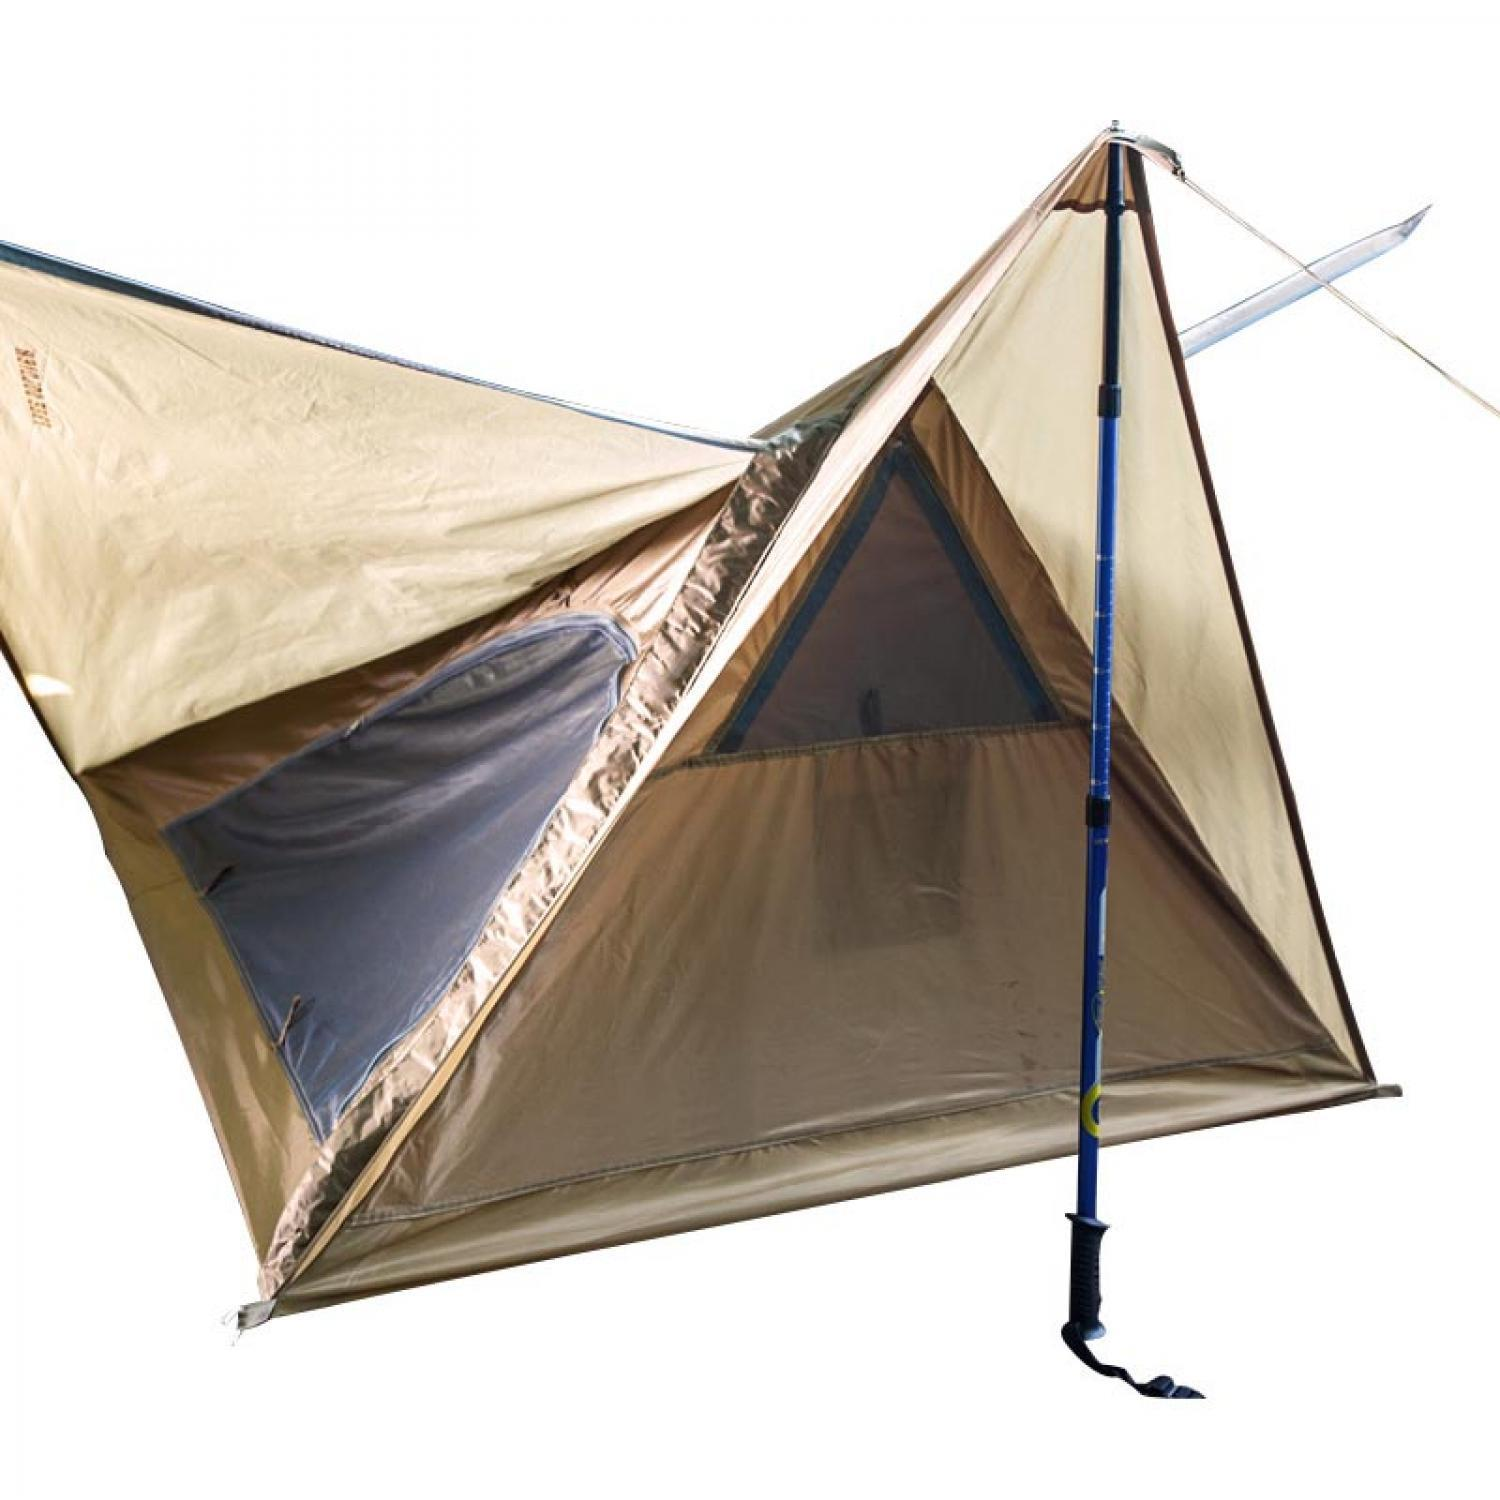 Buy Sell Cheapest Tenda Camping Ultralight Best Quality Product Great Outdoor Monodome 2 Double Layer Waterproof